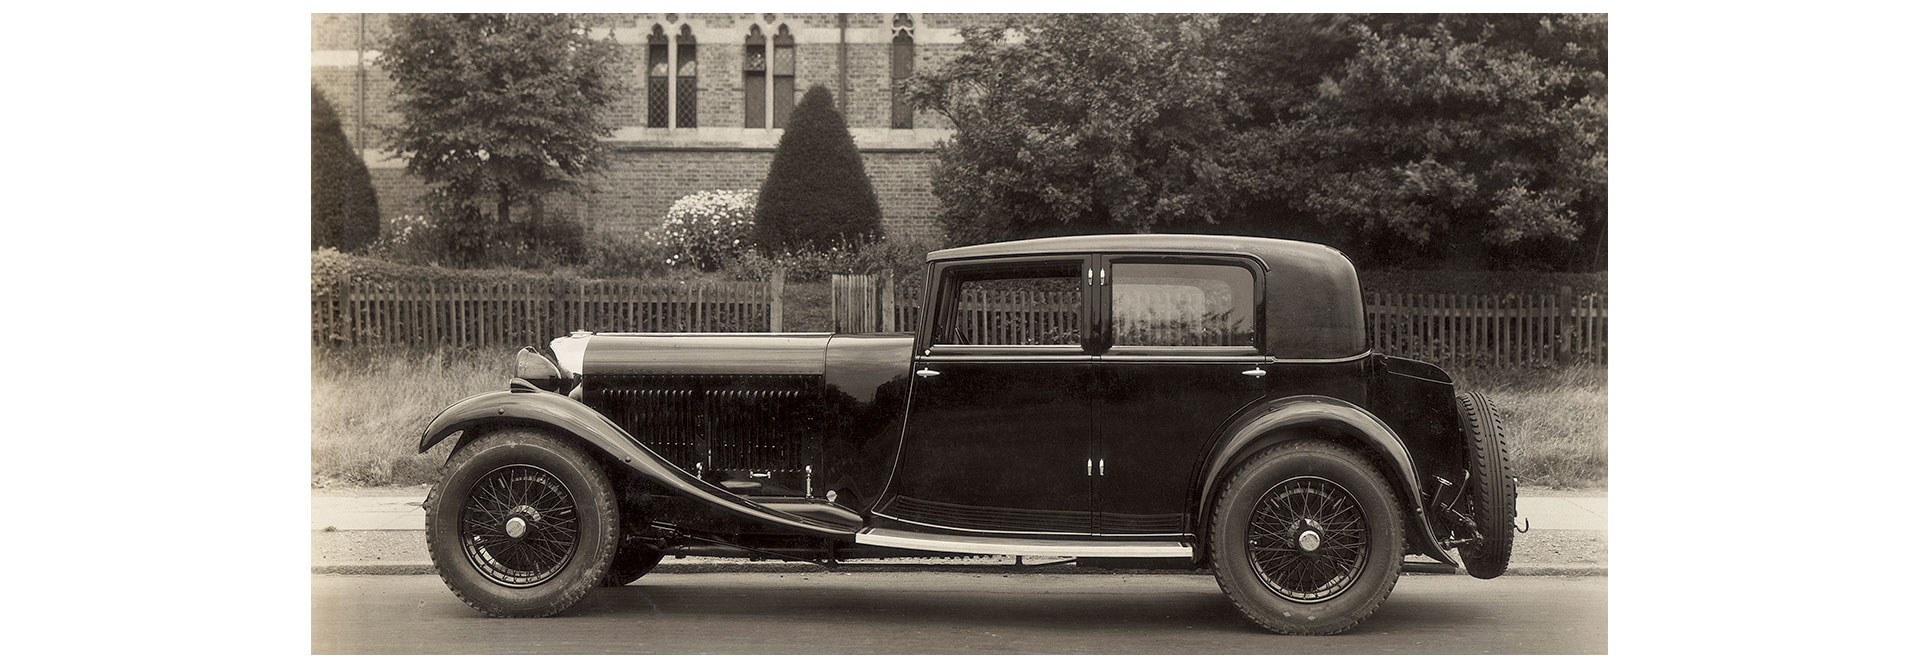 The Bentley 8 Litre - Bentley Legacy Cars